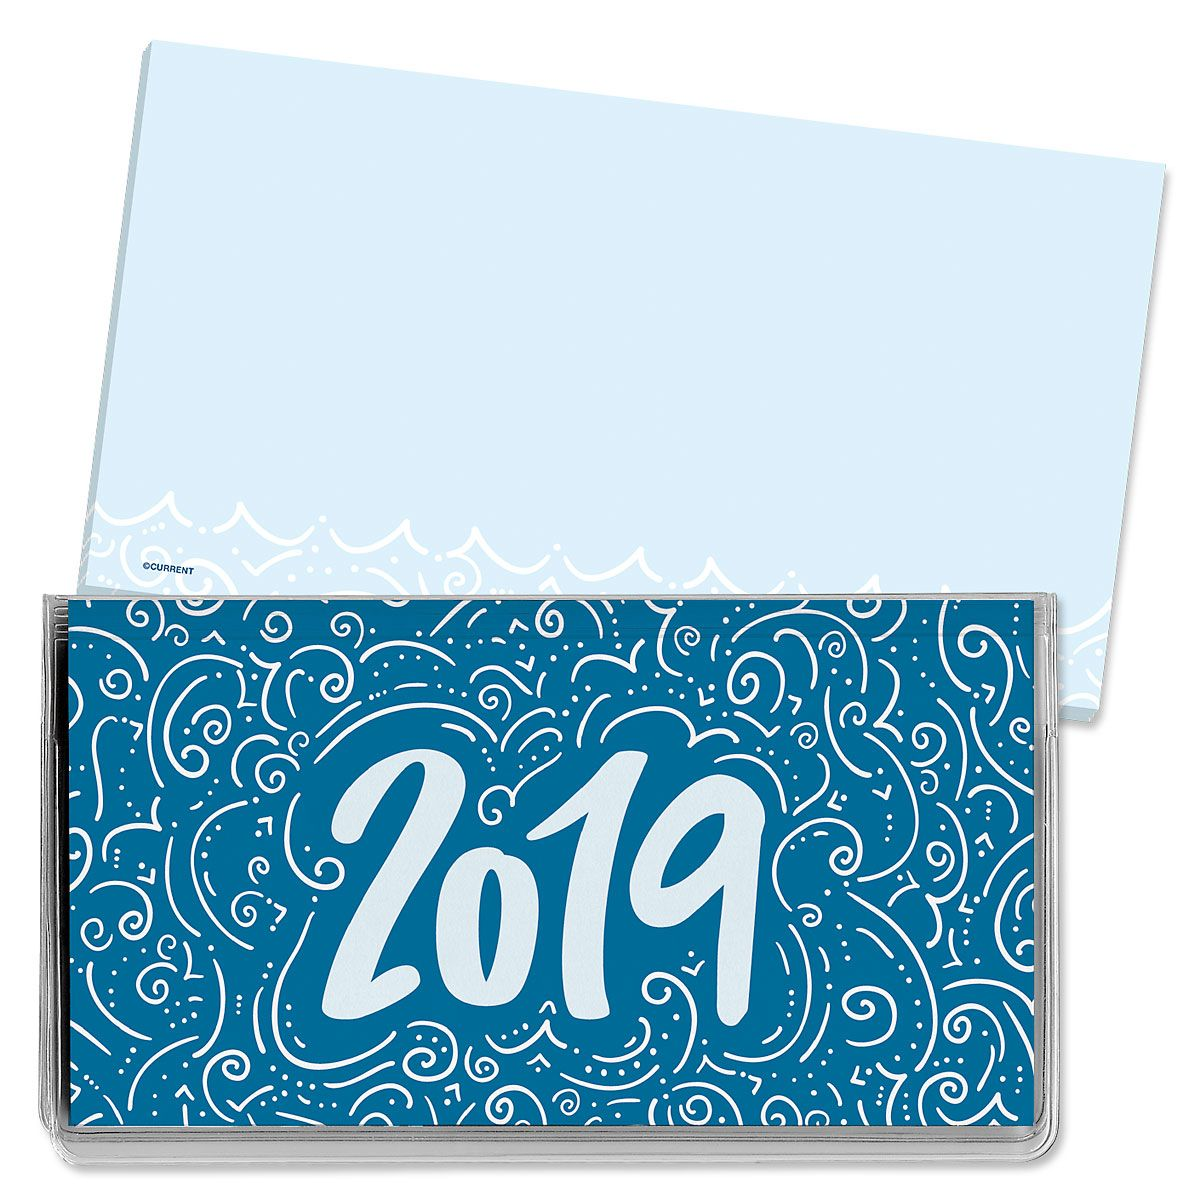 2019 Calligraphy Pocket Calendar